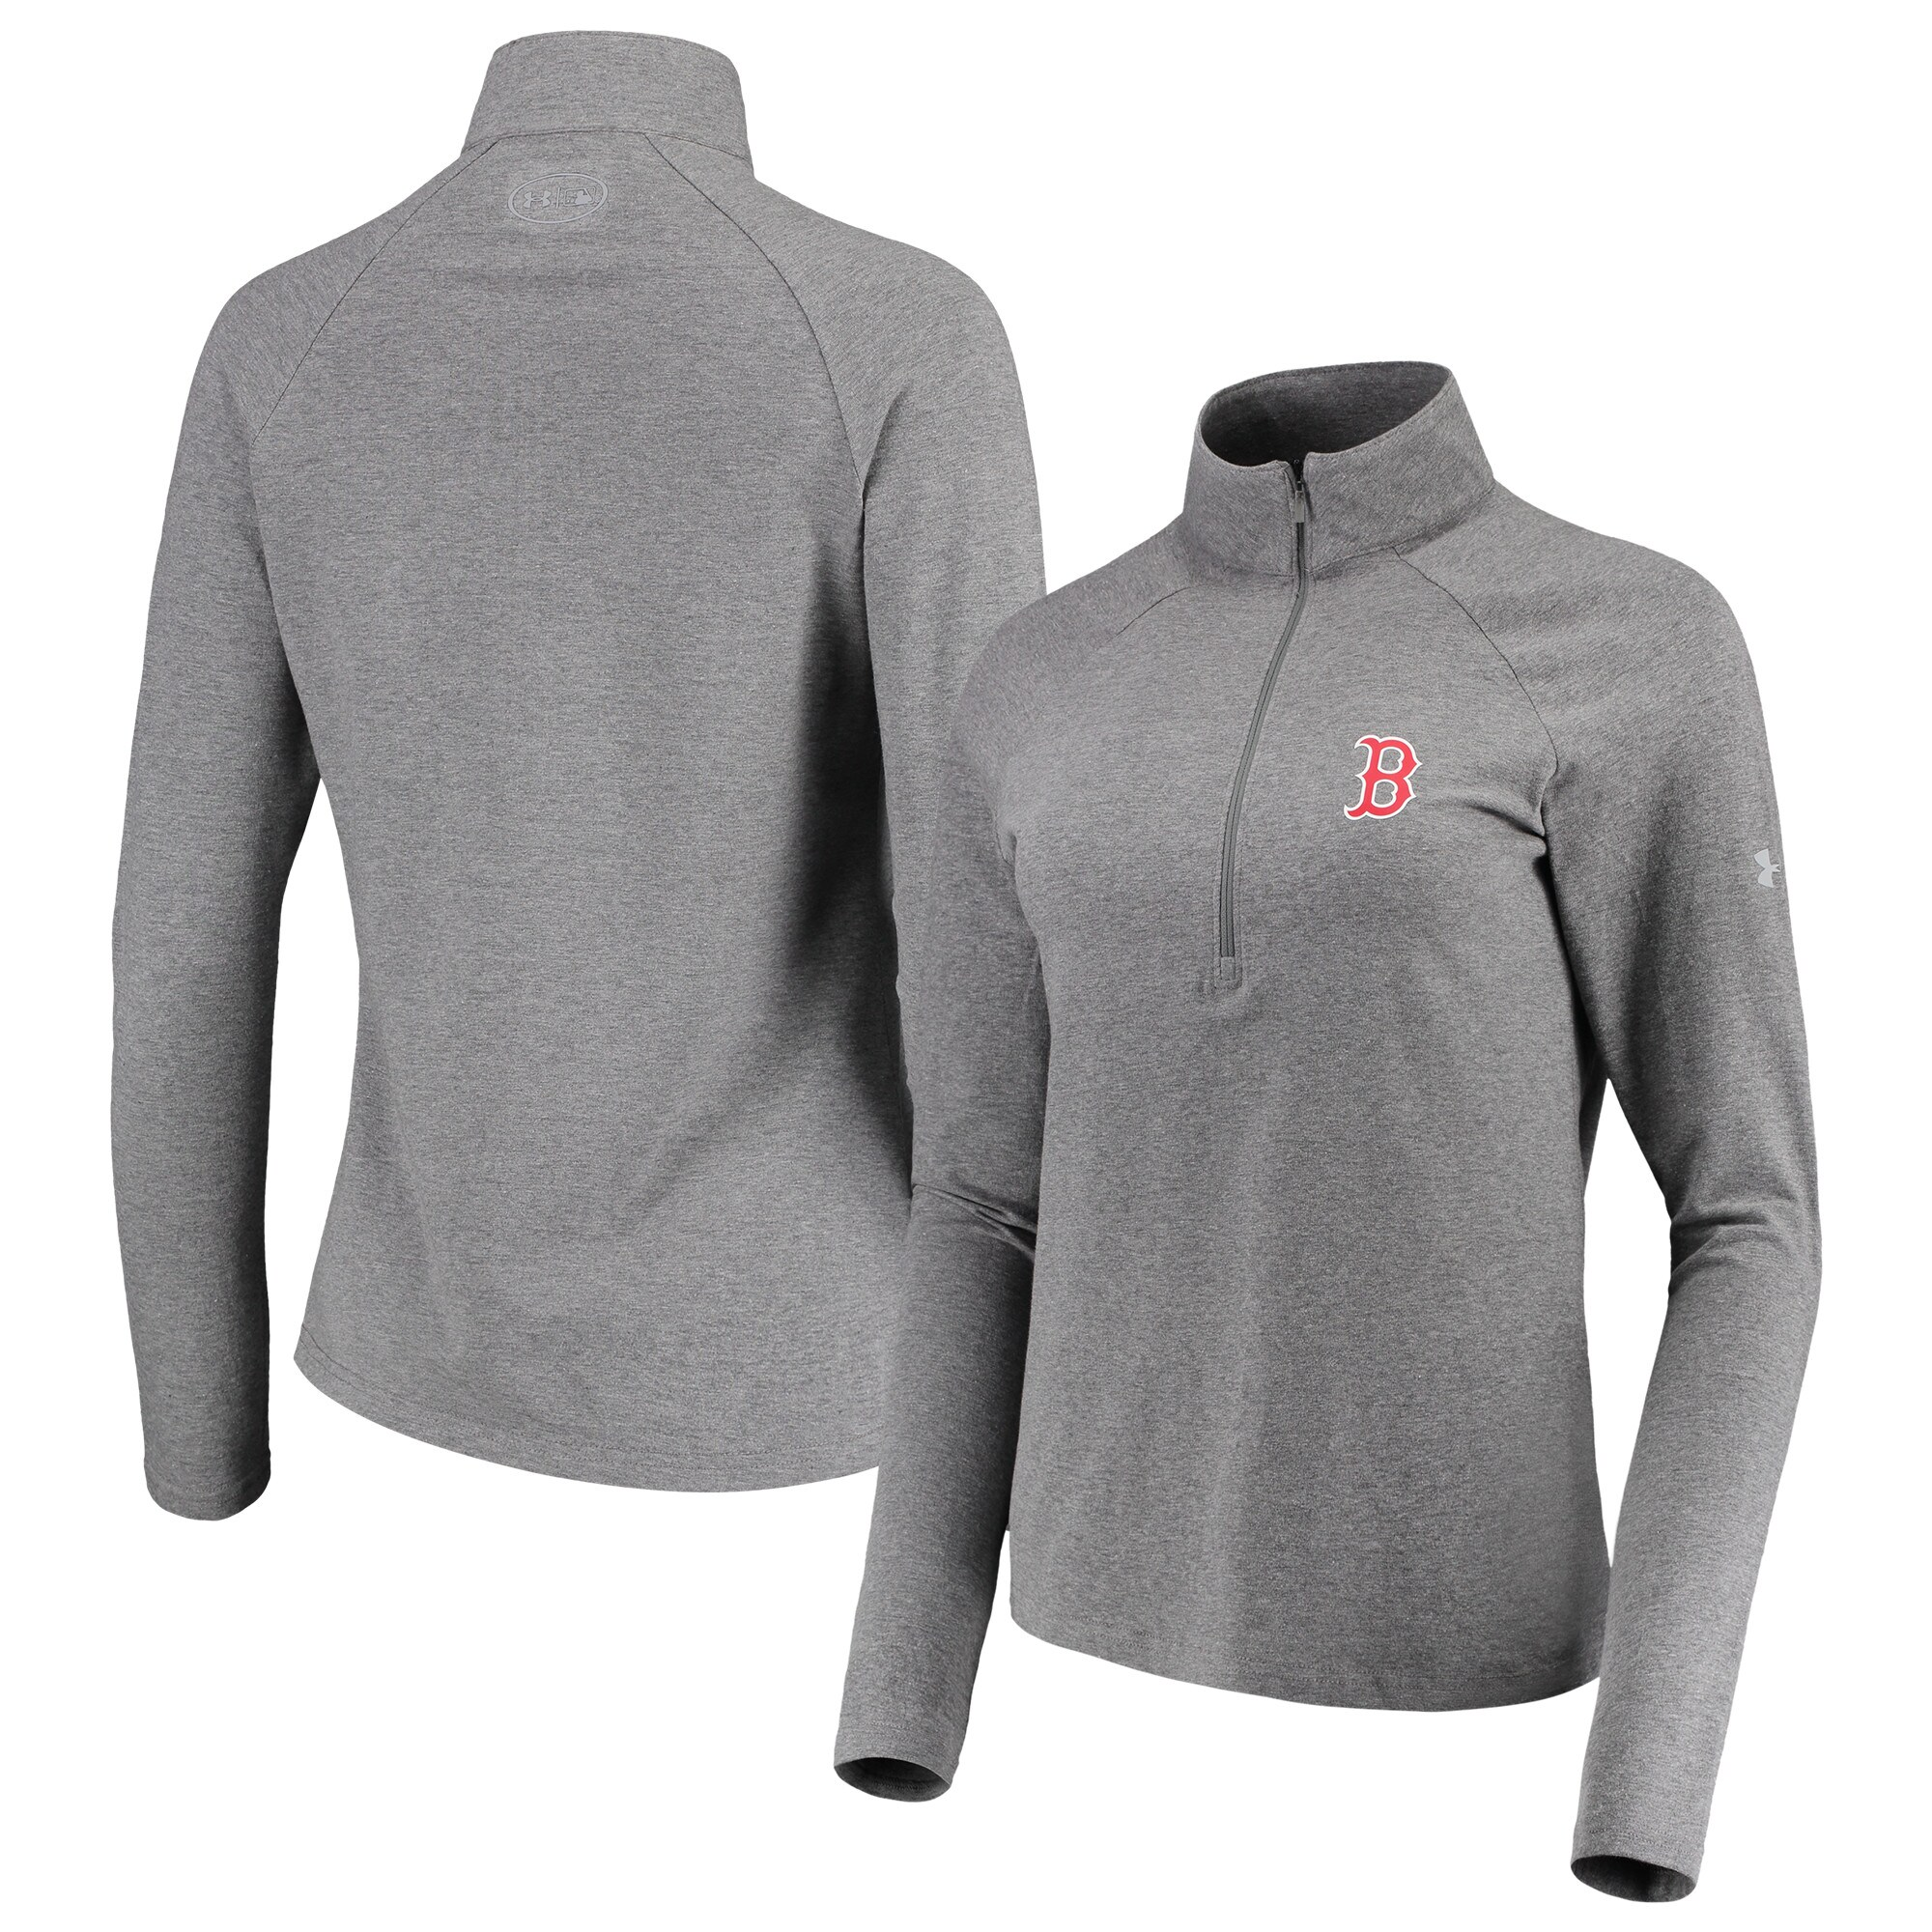 Boston Red Sox Under Armour Women's Passion Performance Tri-Blend Raglan Half-Zip Pullover Jacket - Heathered Gray